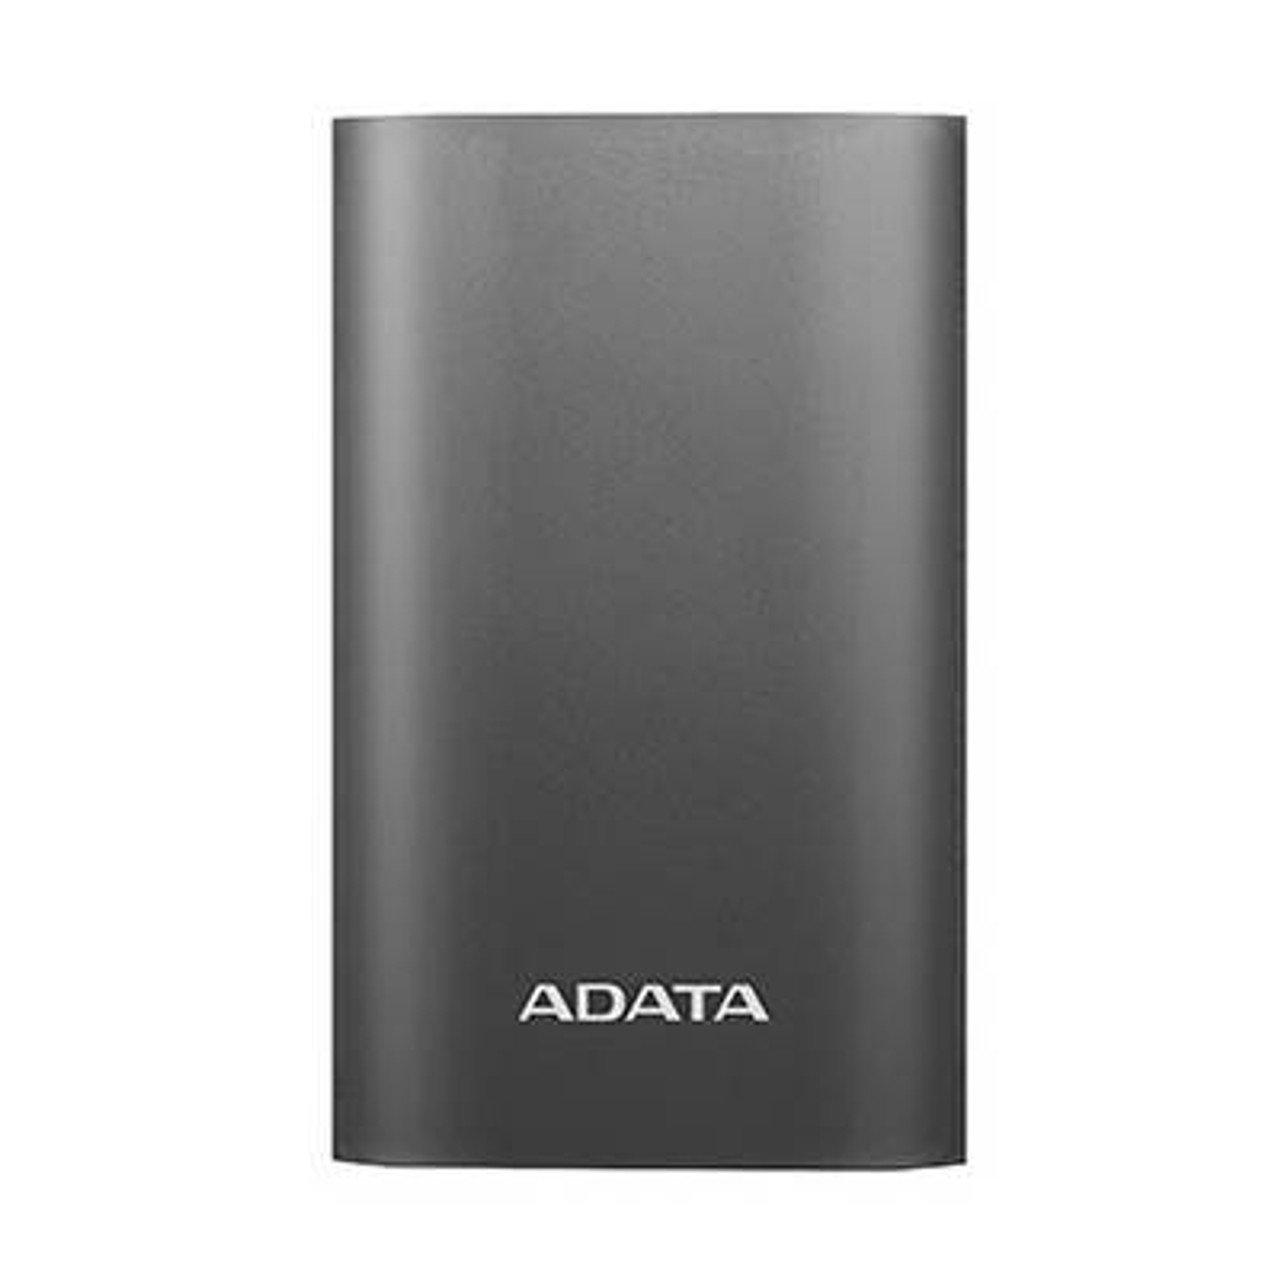 Image for Adata A10050QC 10050mAh - Titanium CX Computer Superstore